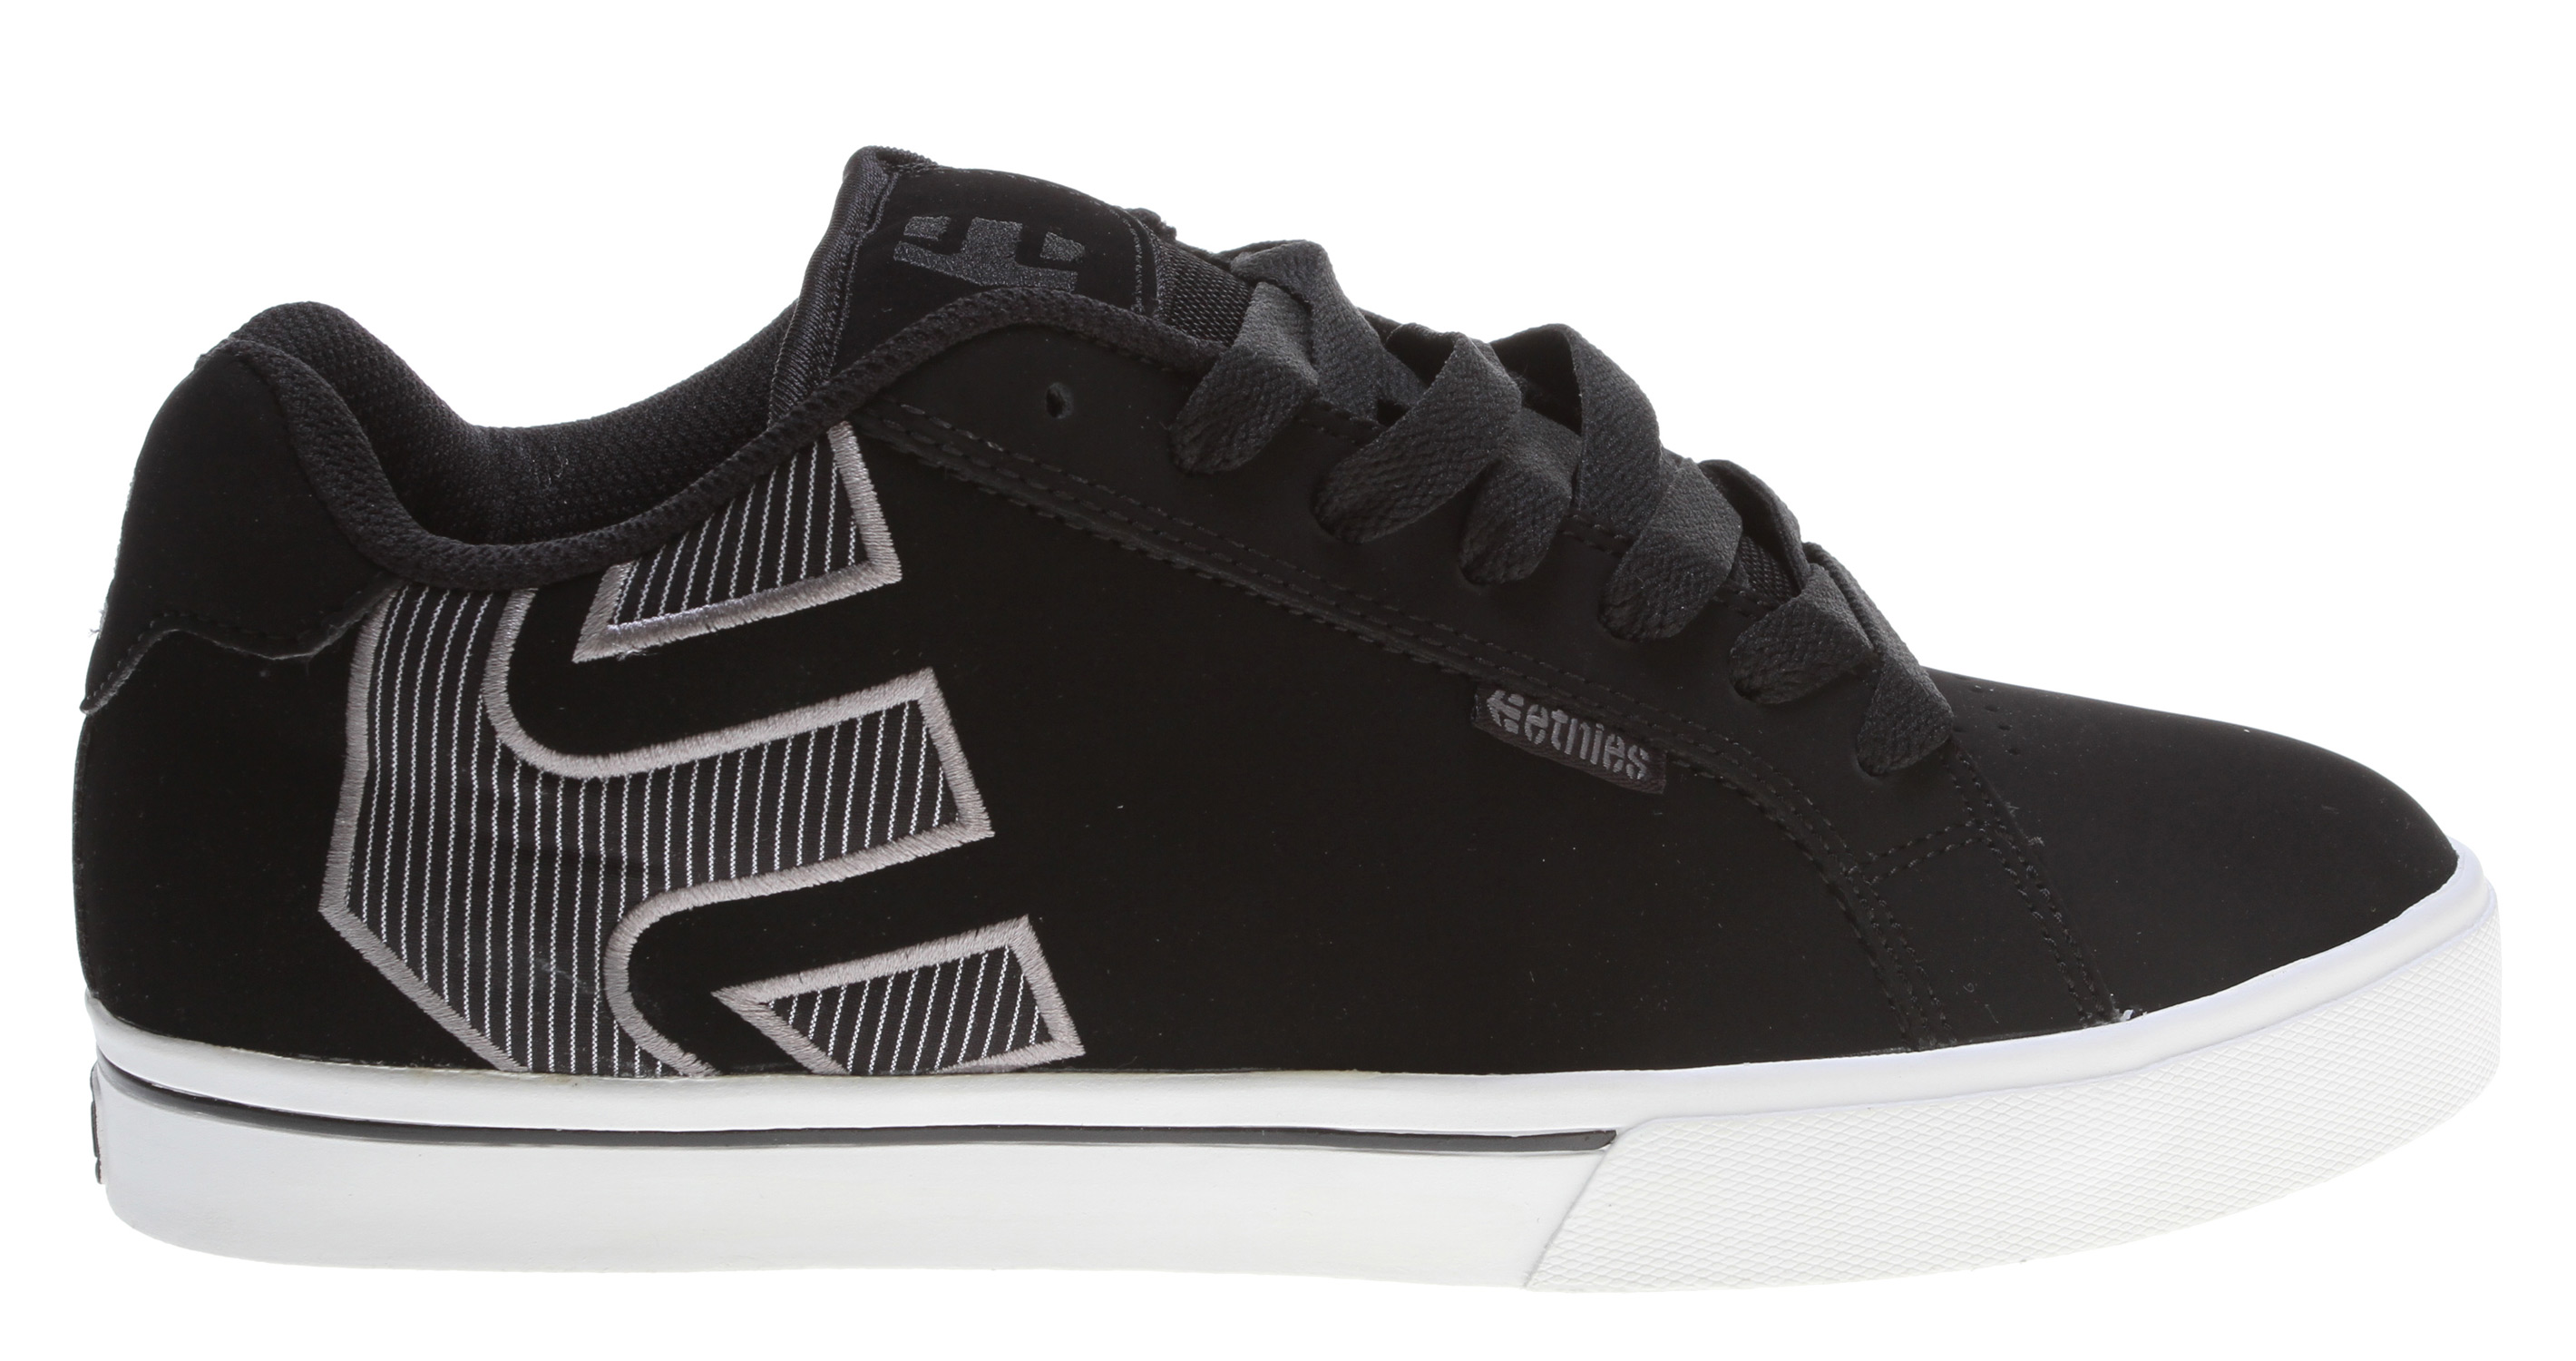 Skateboard Key Features of the Etnies Fader 1.5 Skate Shoes: Trademark etnies Arrow logo integrated into heel area Padded tongue and collar STI Foam Lite level 1 footbed New 400 NBS rubber outsole with internal EVA midsole - $41.95